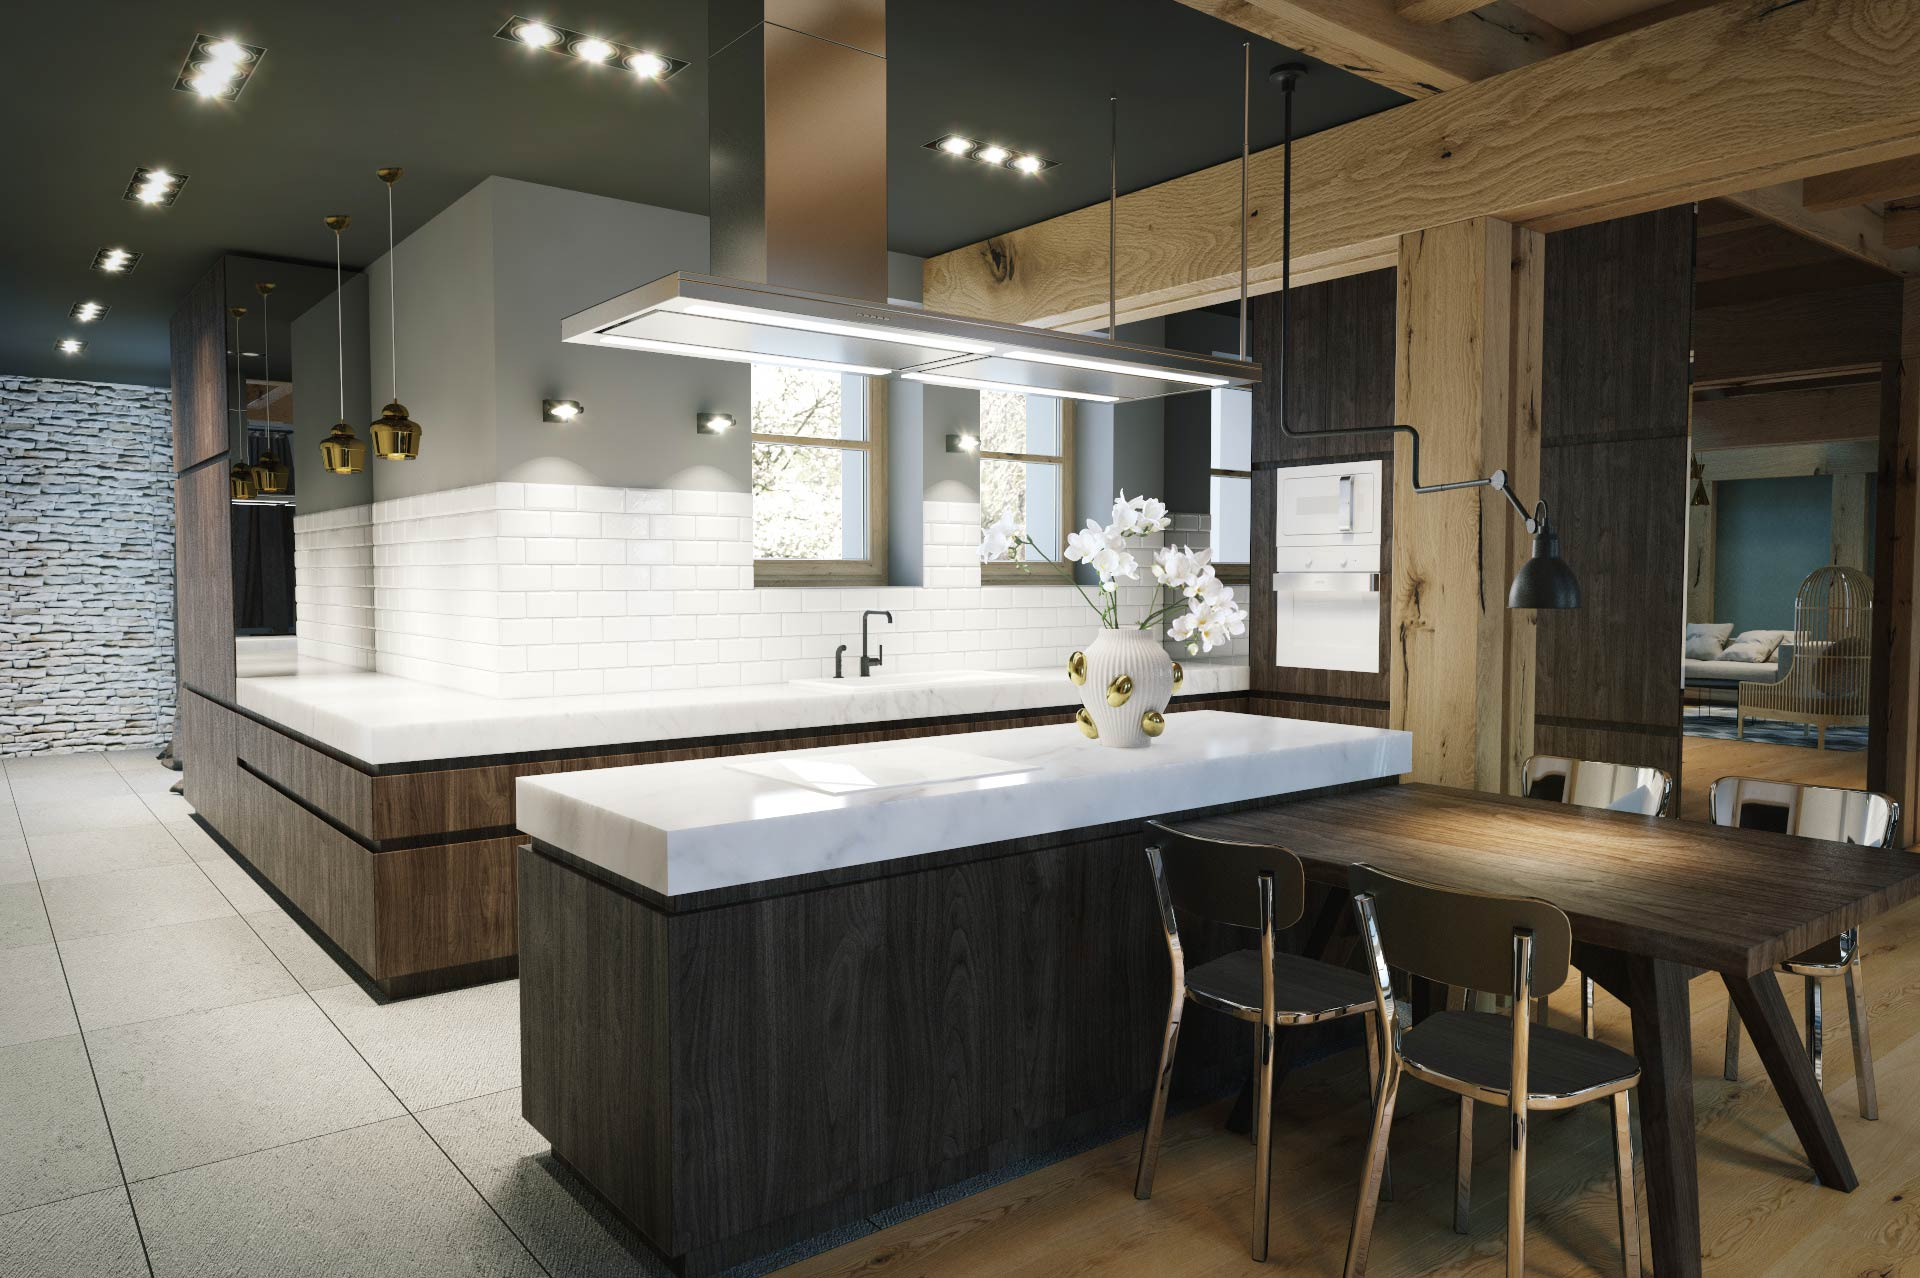 Visualization of a kitchen in detached house